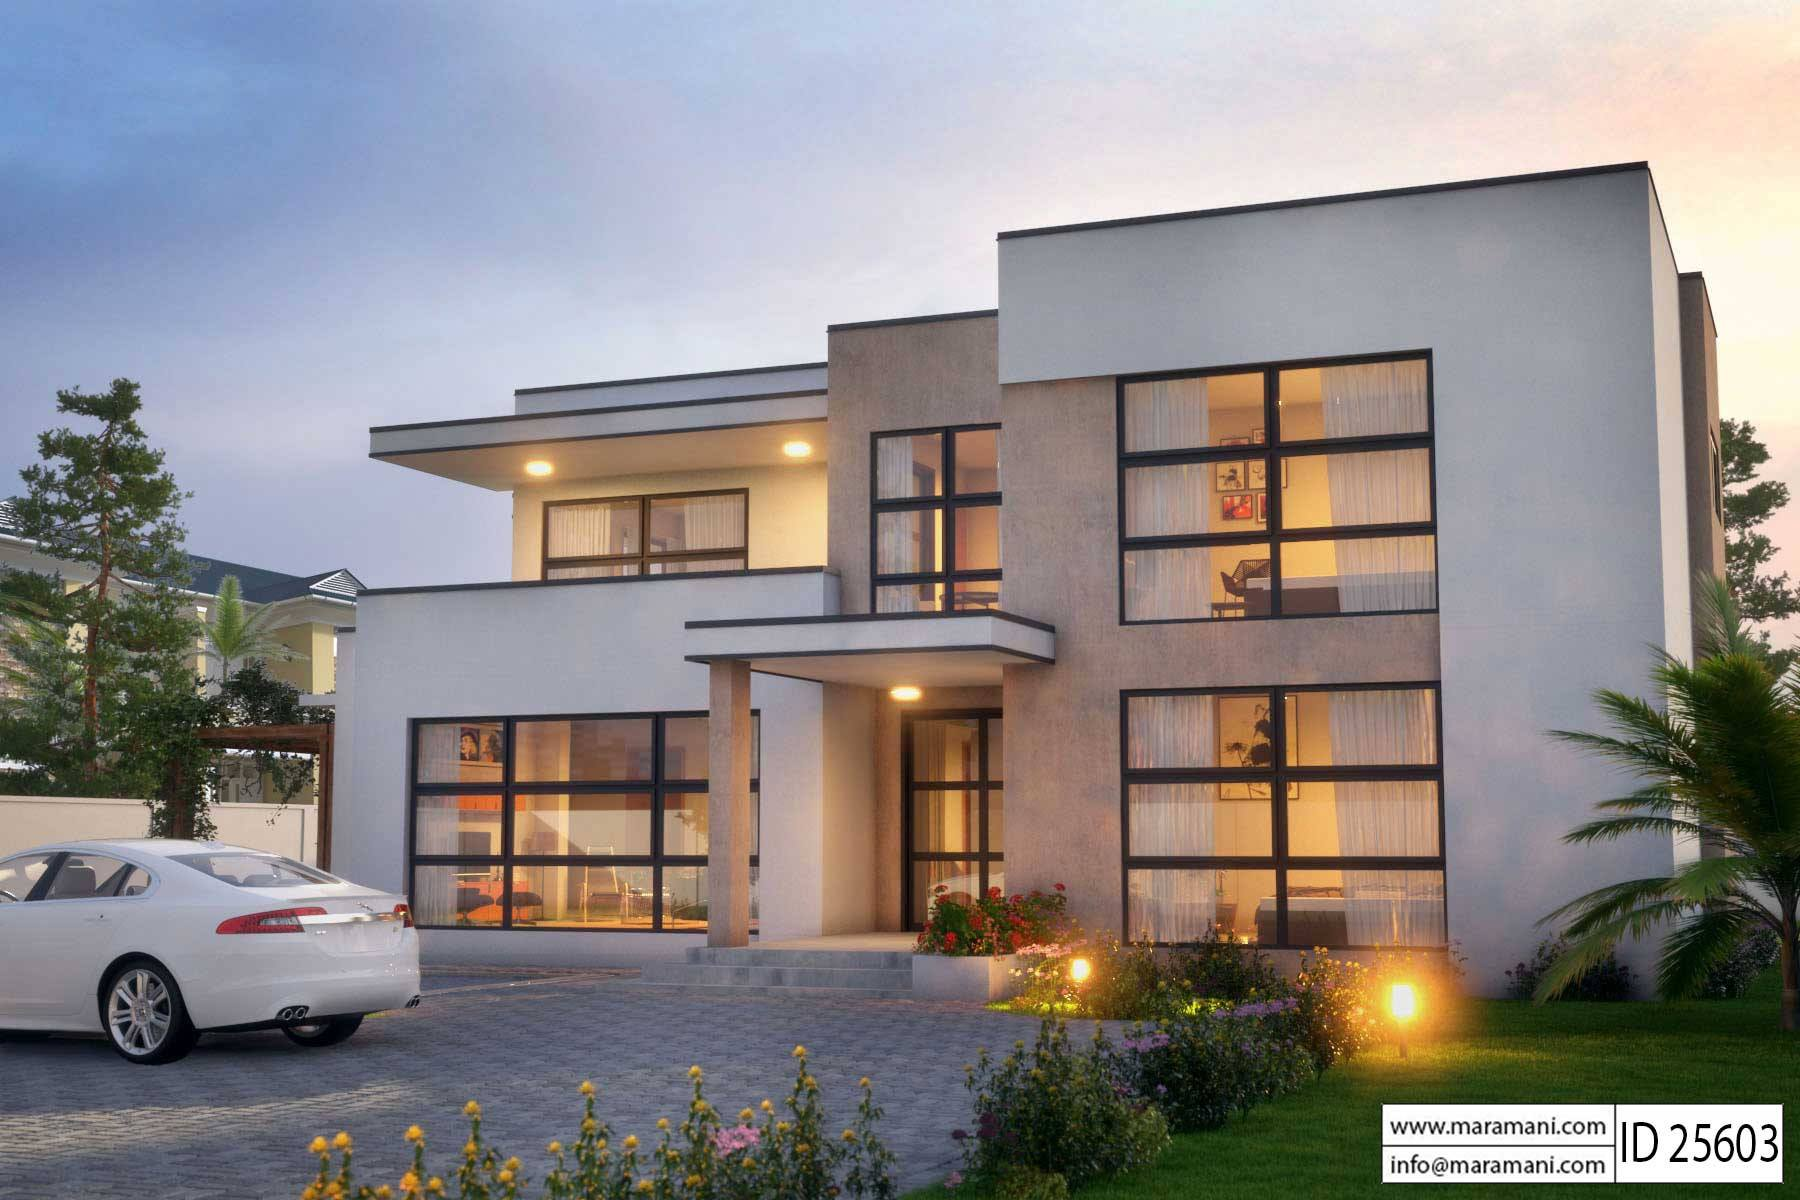 Modern 5 bedroom house design id 25603 floor plans by maramani - Level a house decor ...